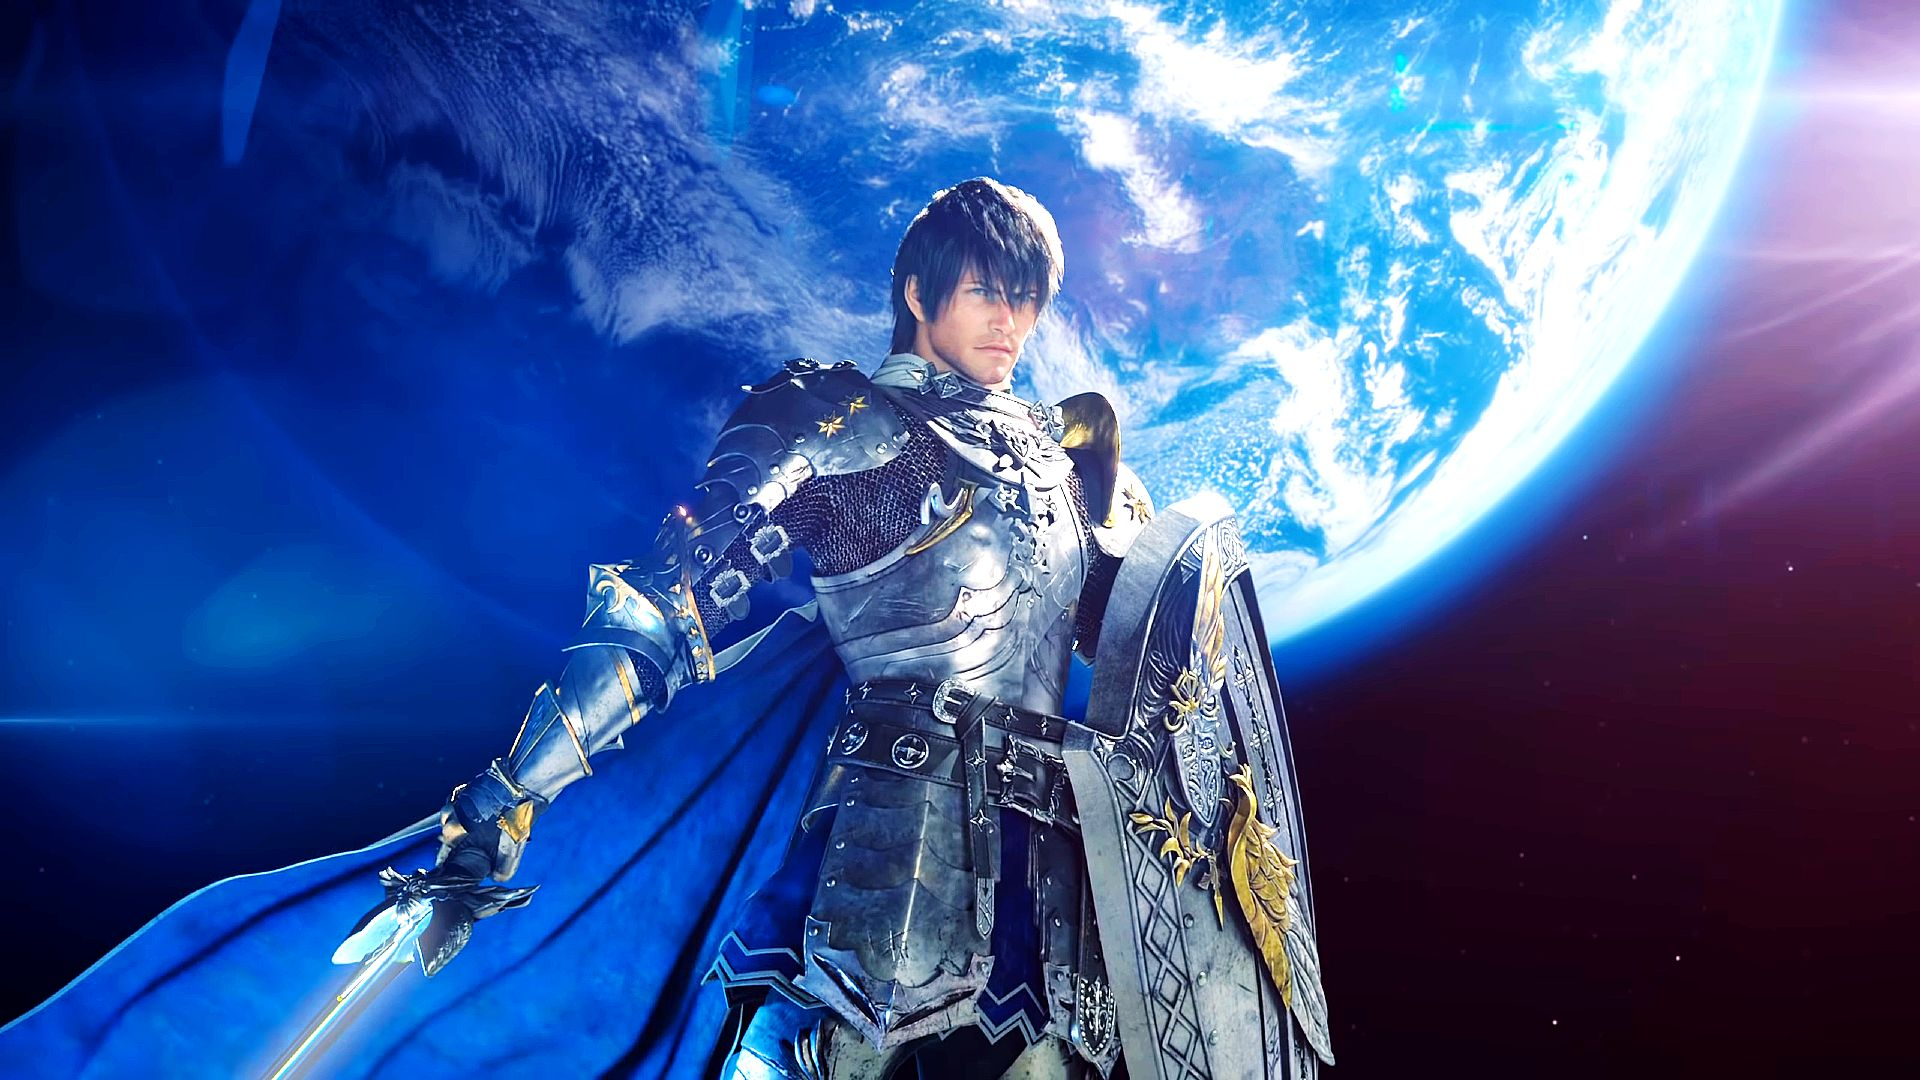 Final Fantasy XIV Becomes the Most Profitable Final Fantasy Game 1